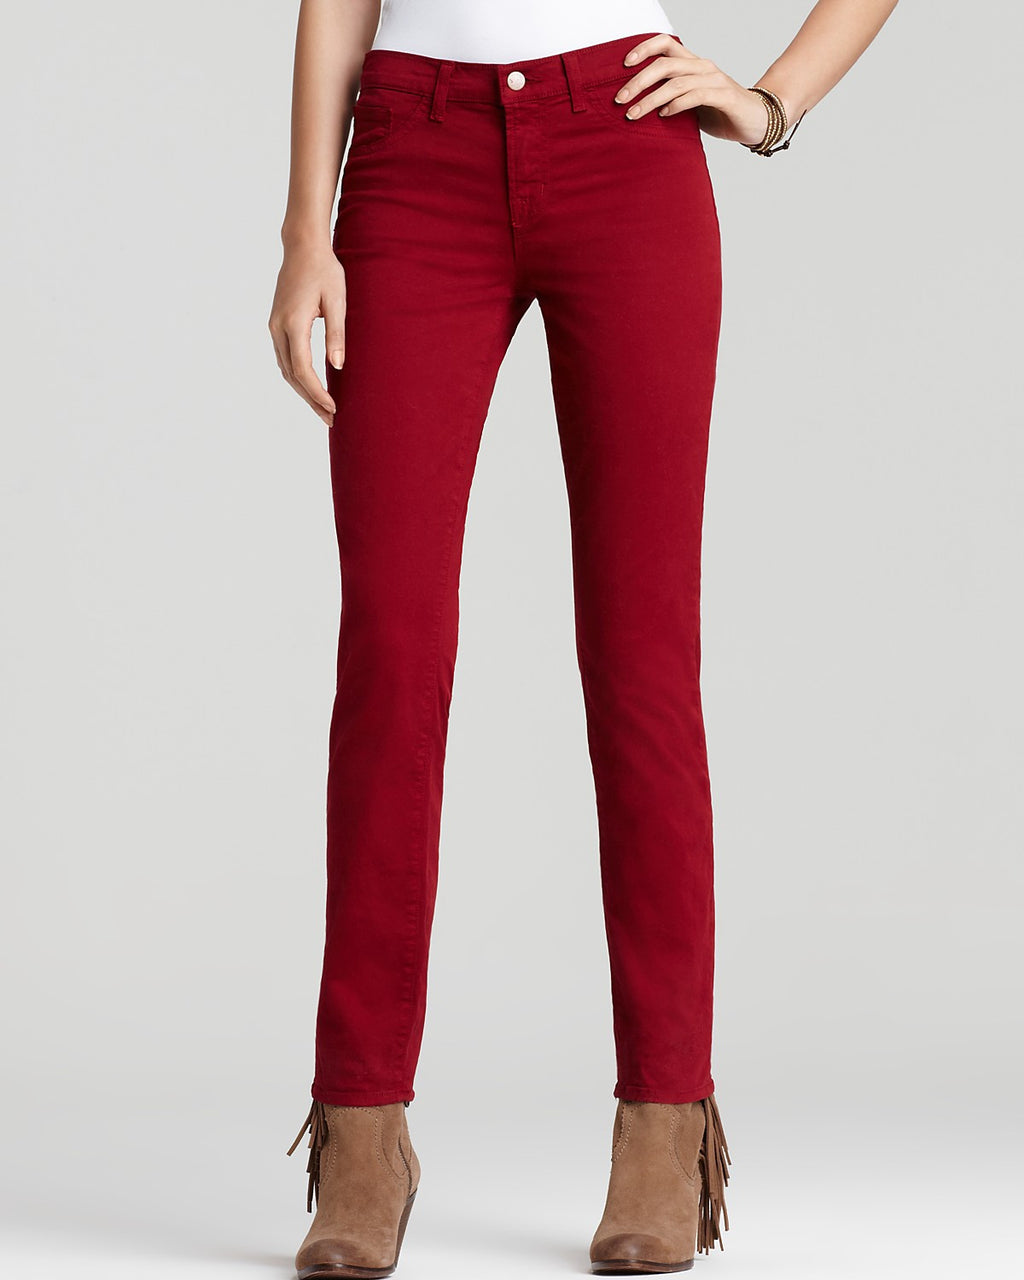 J Brand Black Cherry Skinny Leg Five Pocket Jeans - Joyce's Closet  - 1